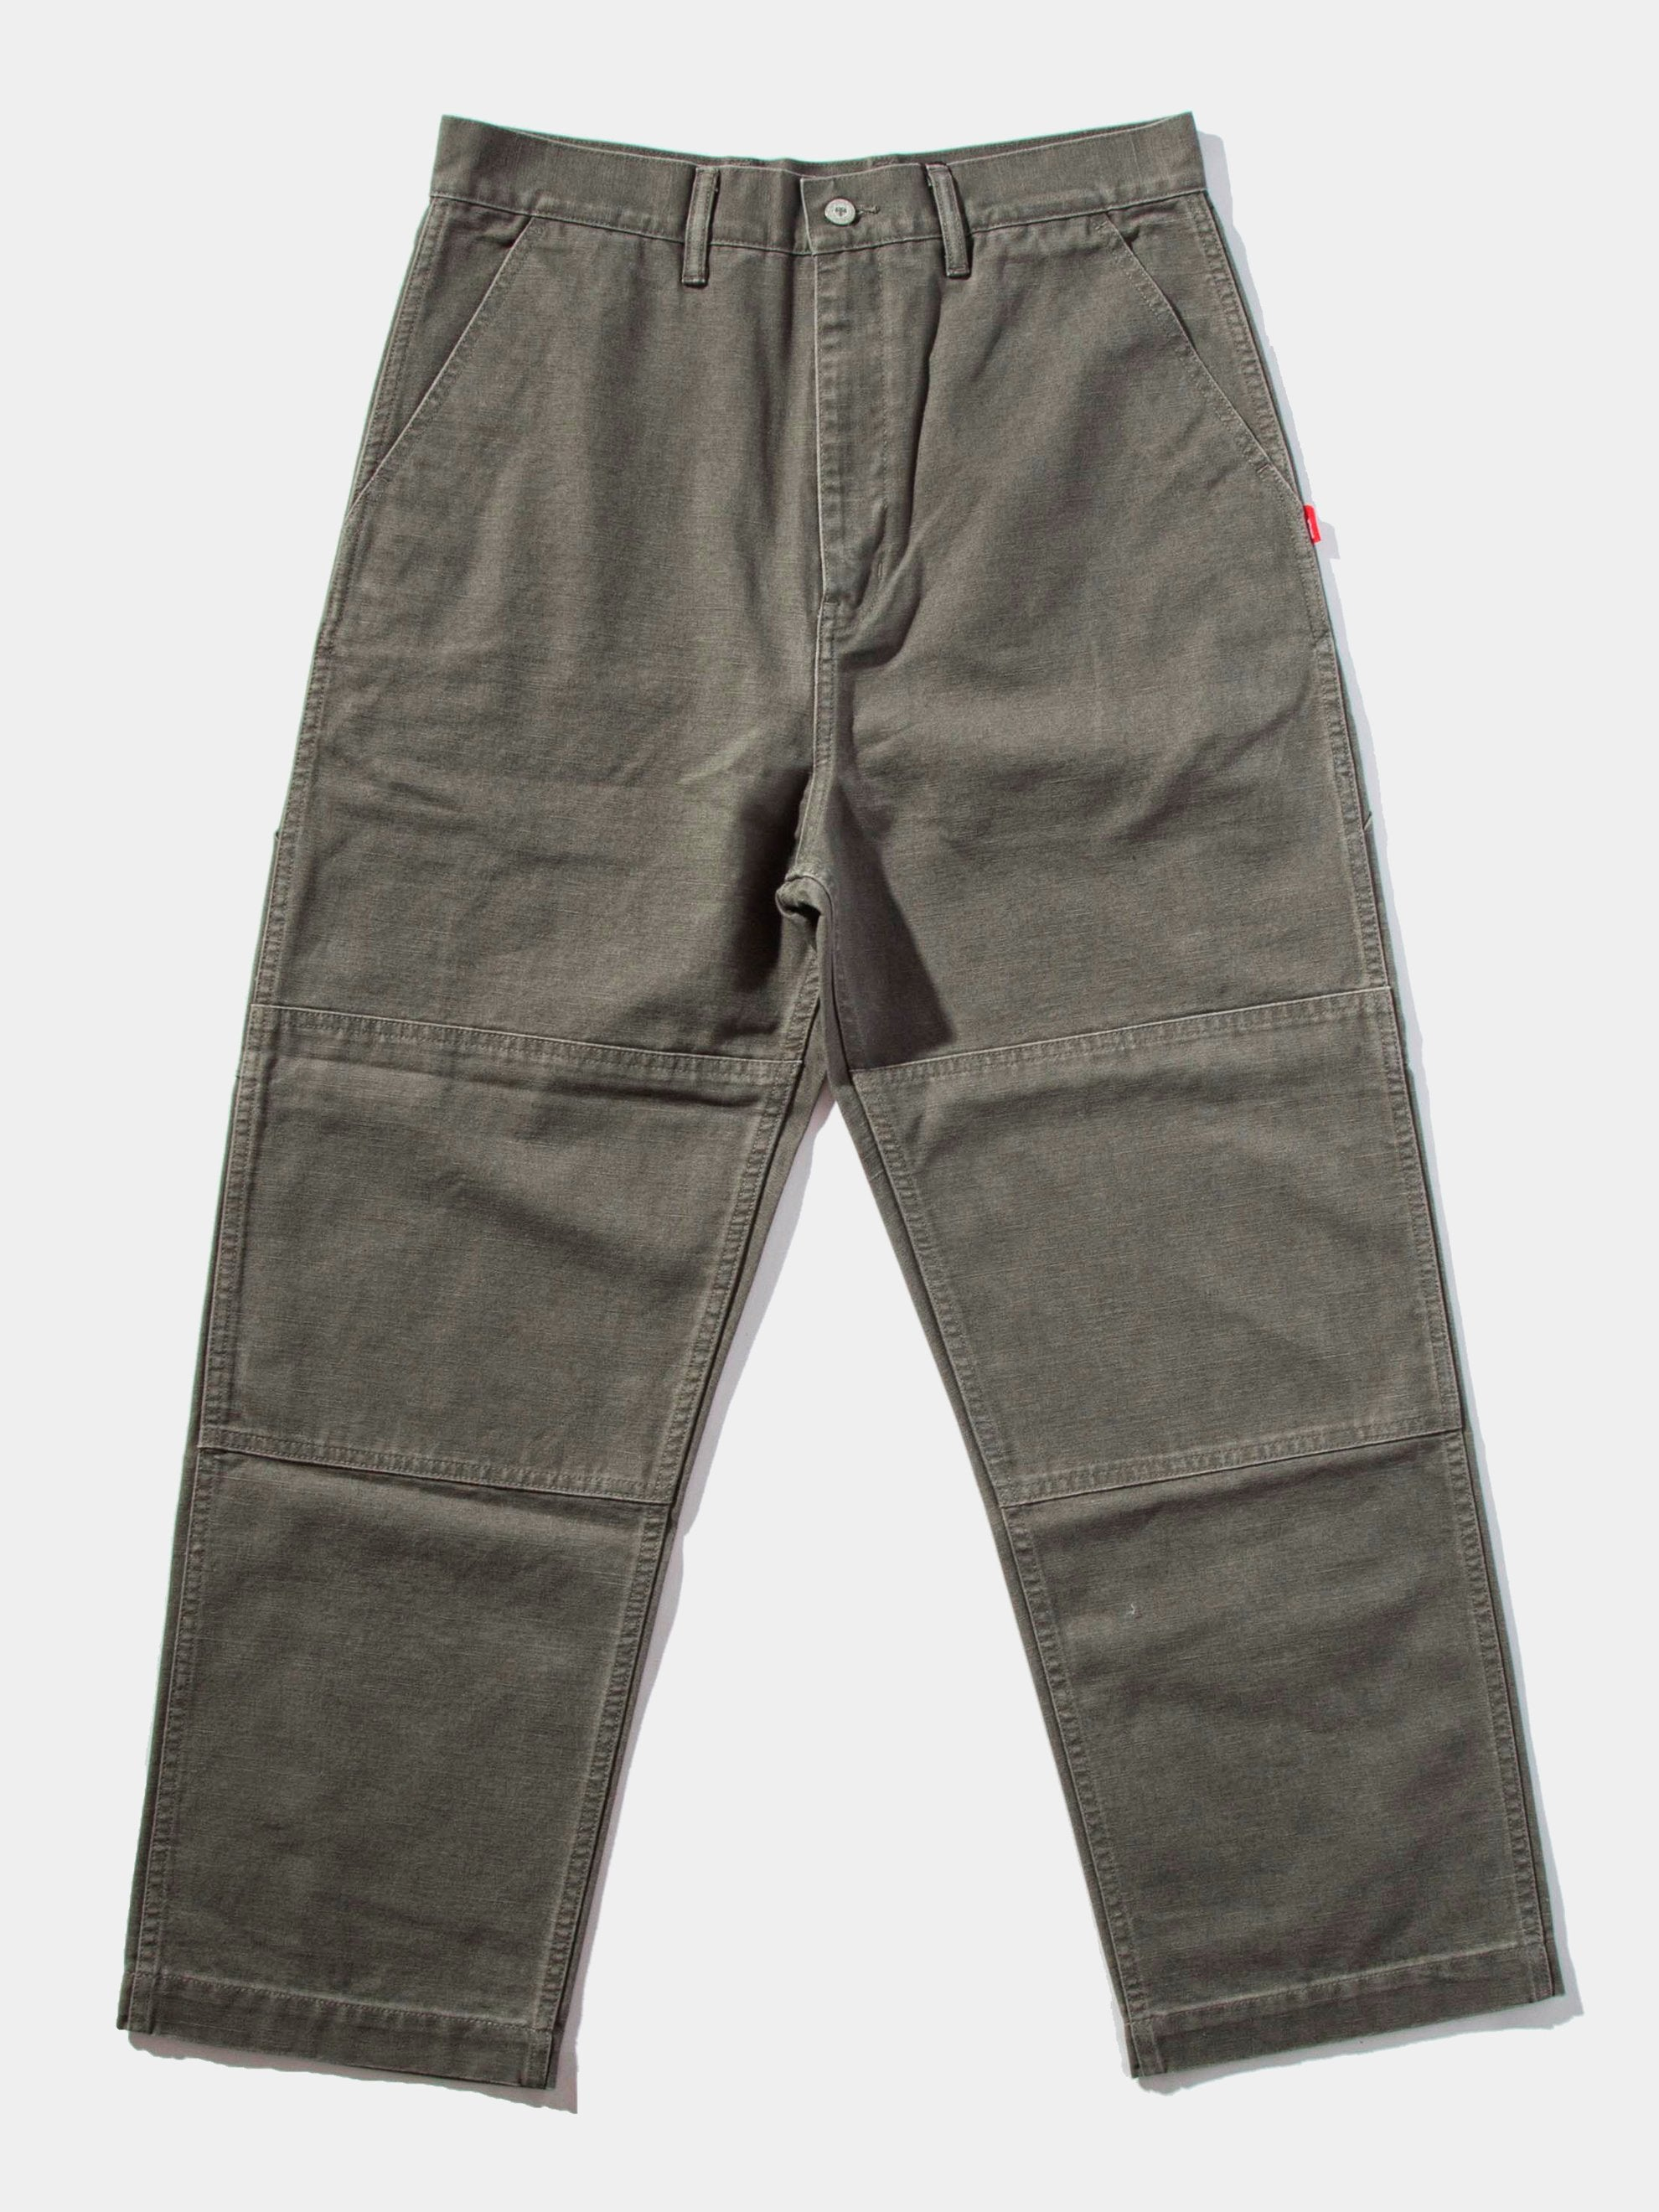 Olive Drab Armstrong Trousers (Duck) 14